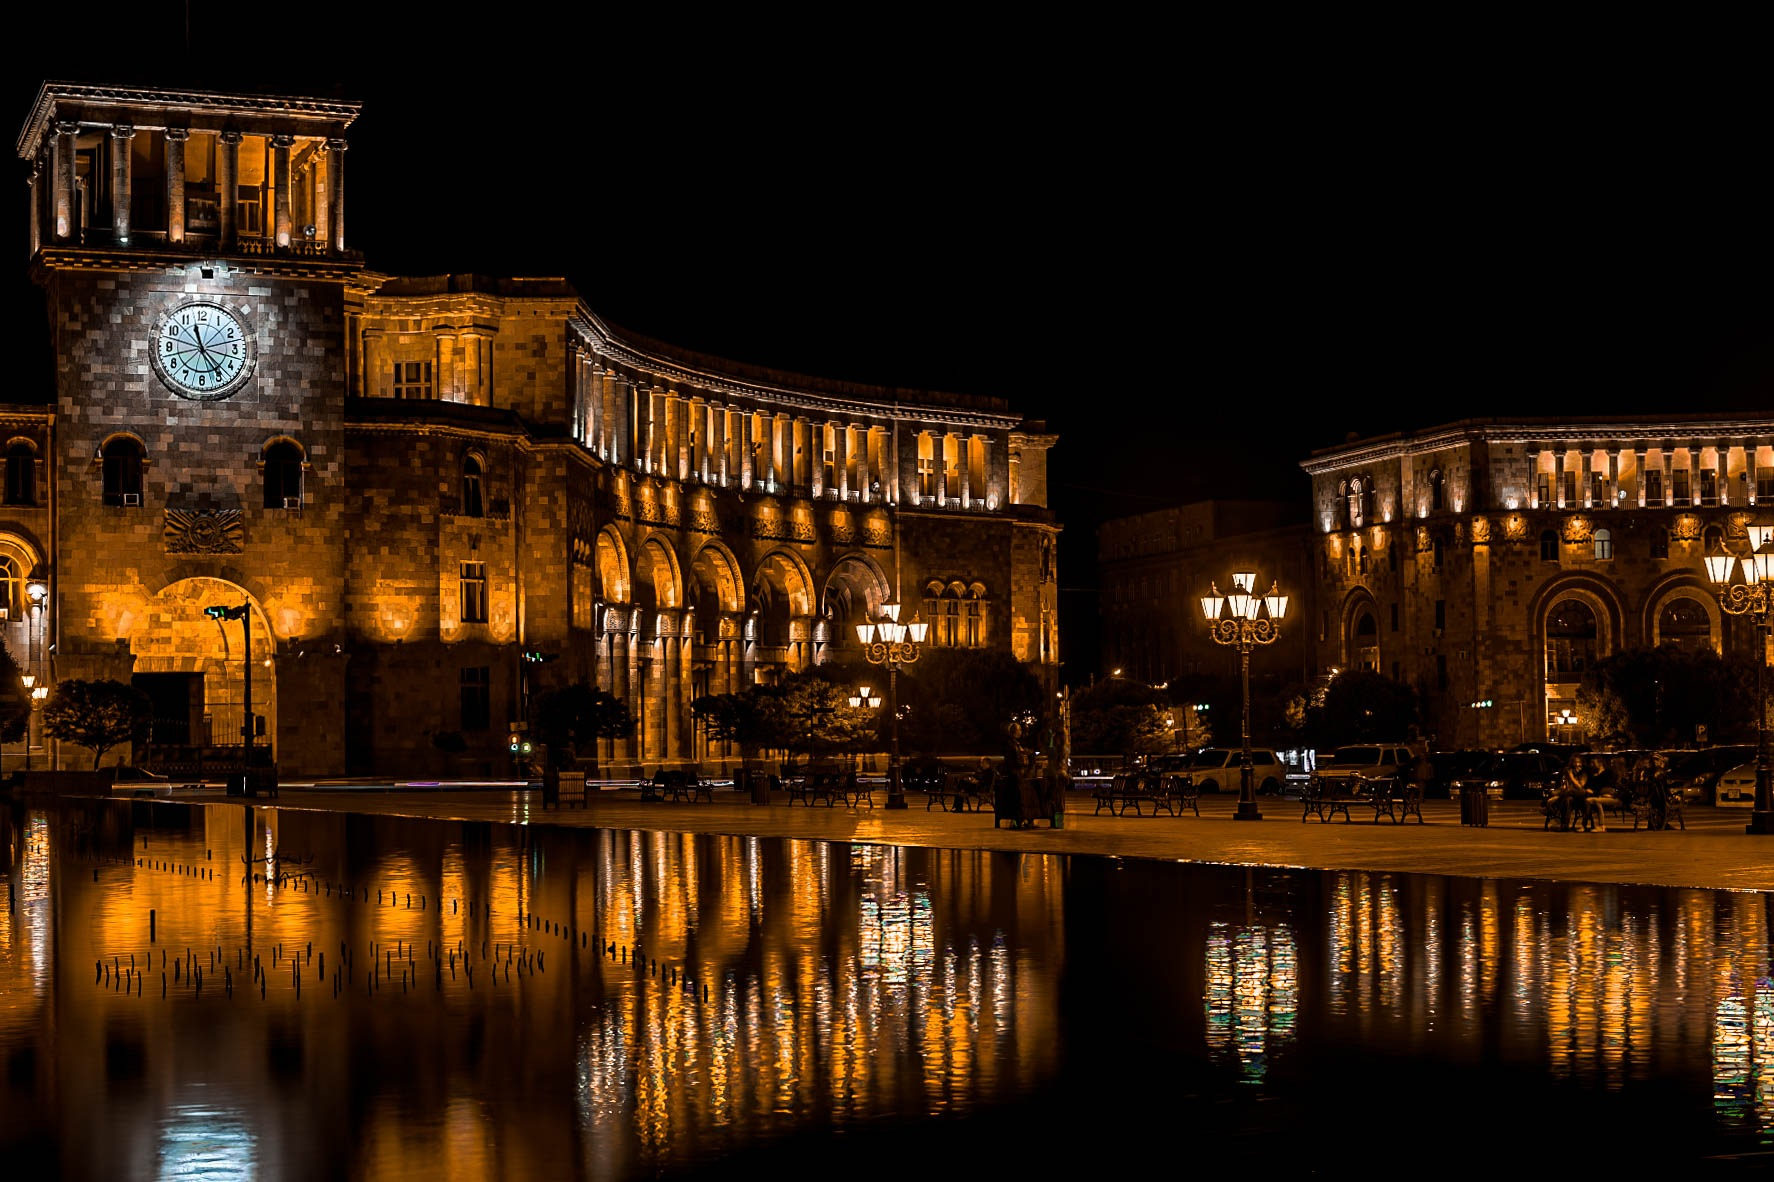 The square of Yerevan at night. by varderesyan